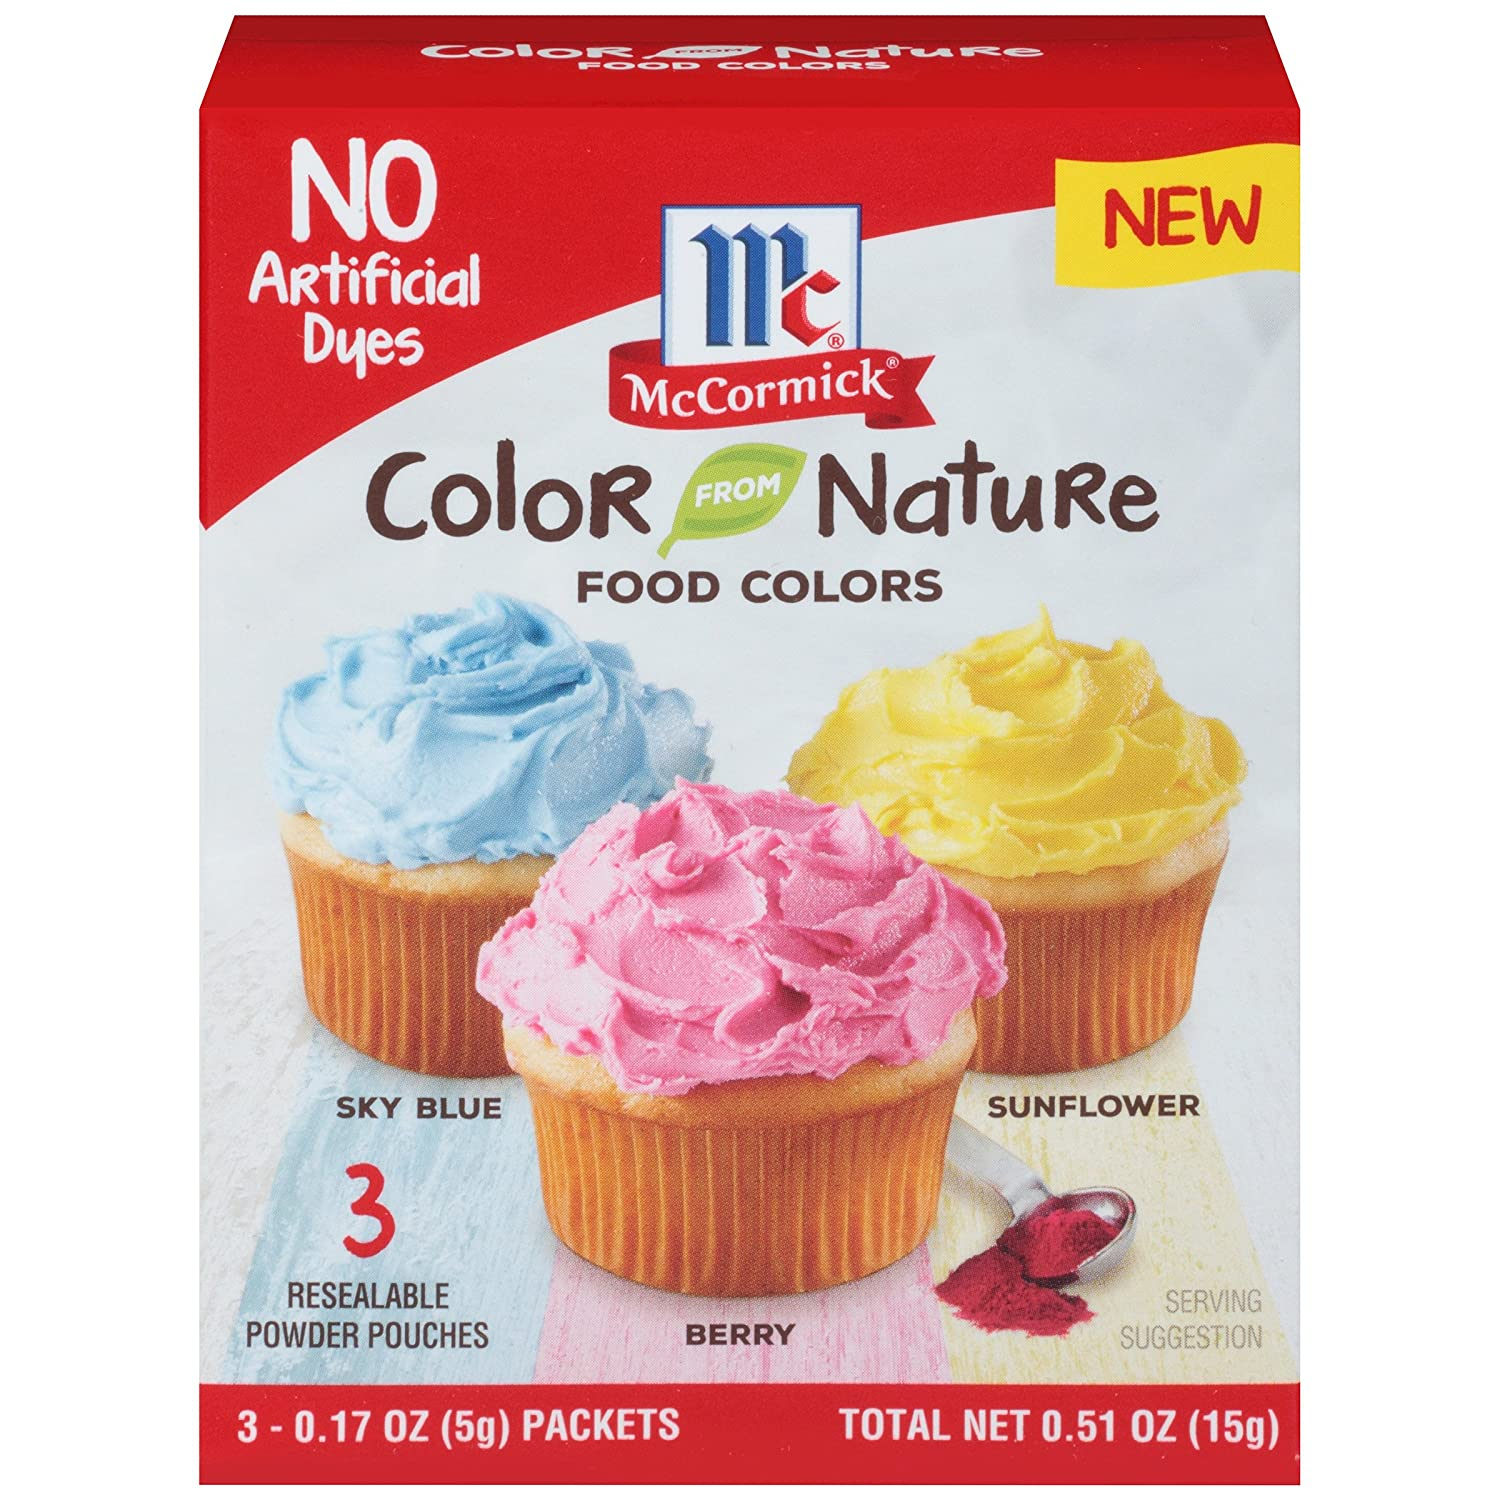 Amazon.com : McCormick Color From Nature, 0.51 oz : Grocery ...